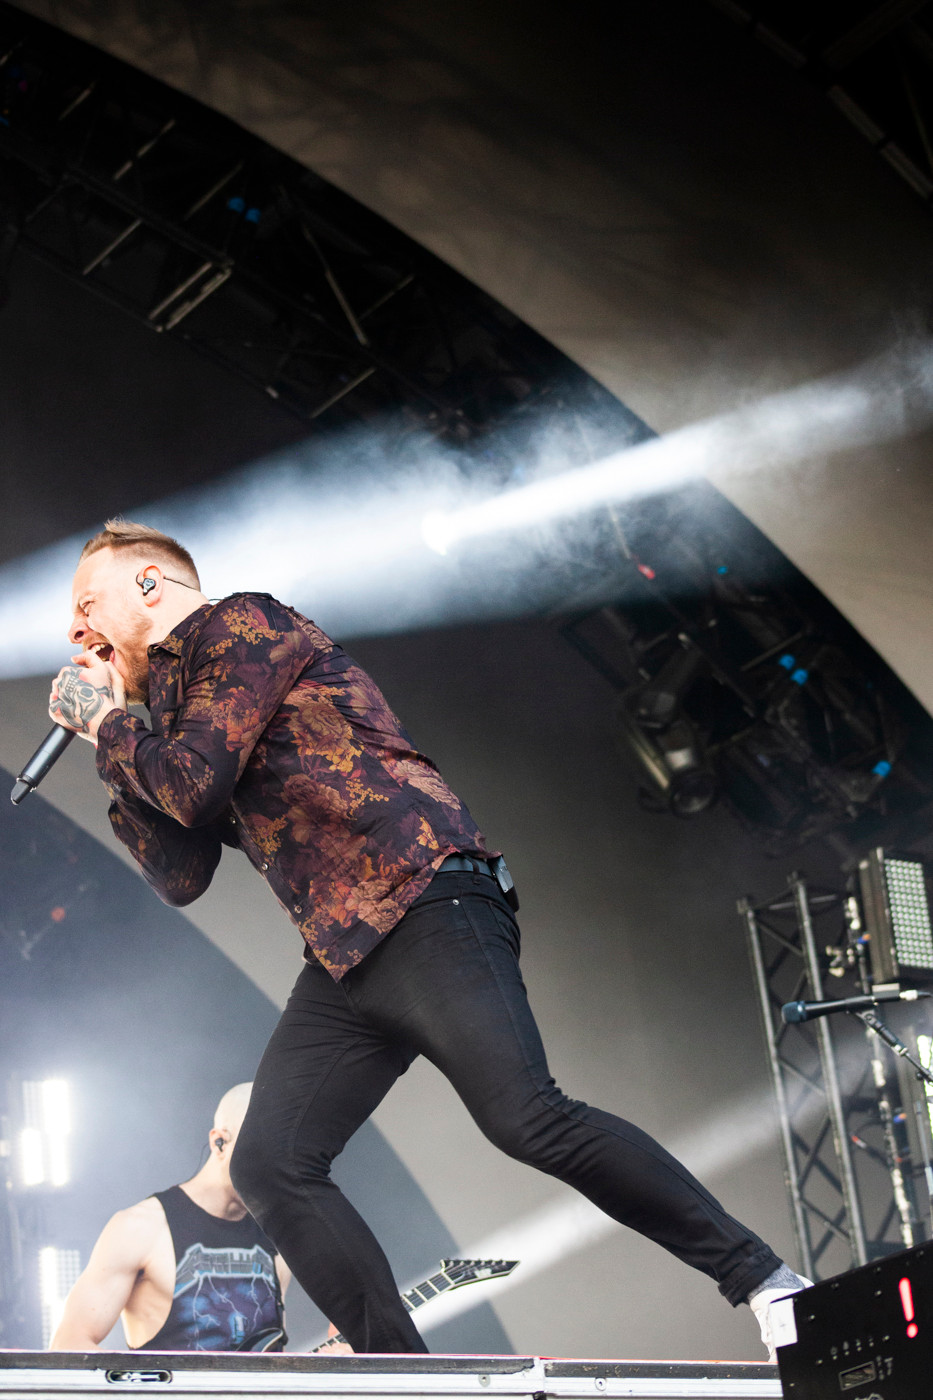 Architects, photo by Gili Dailes